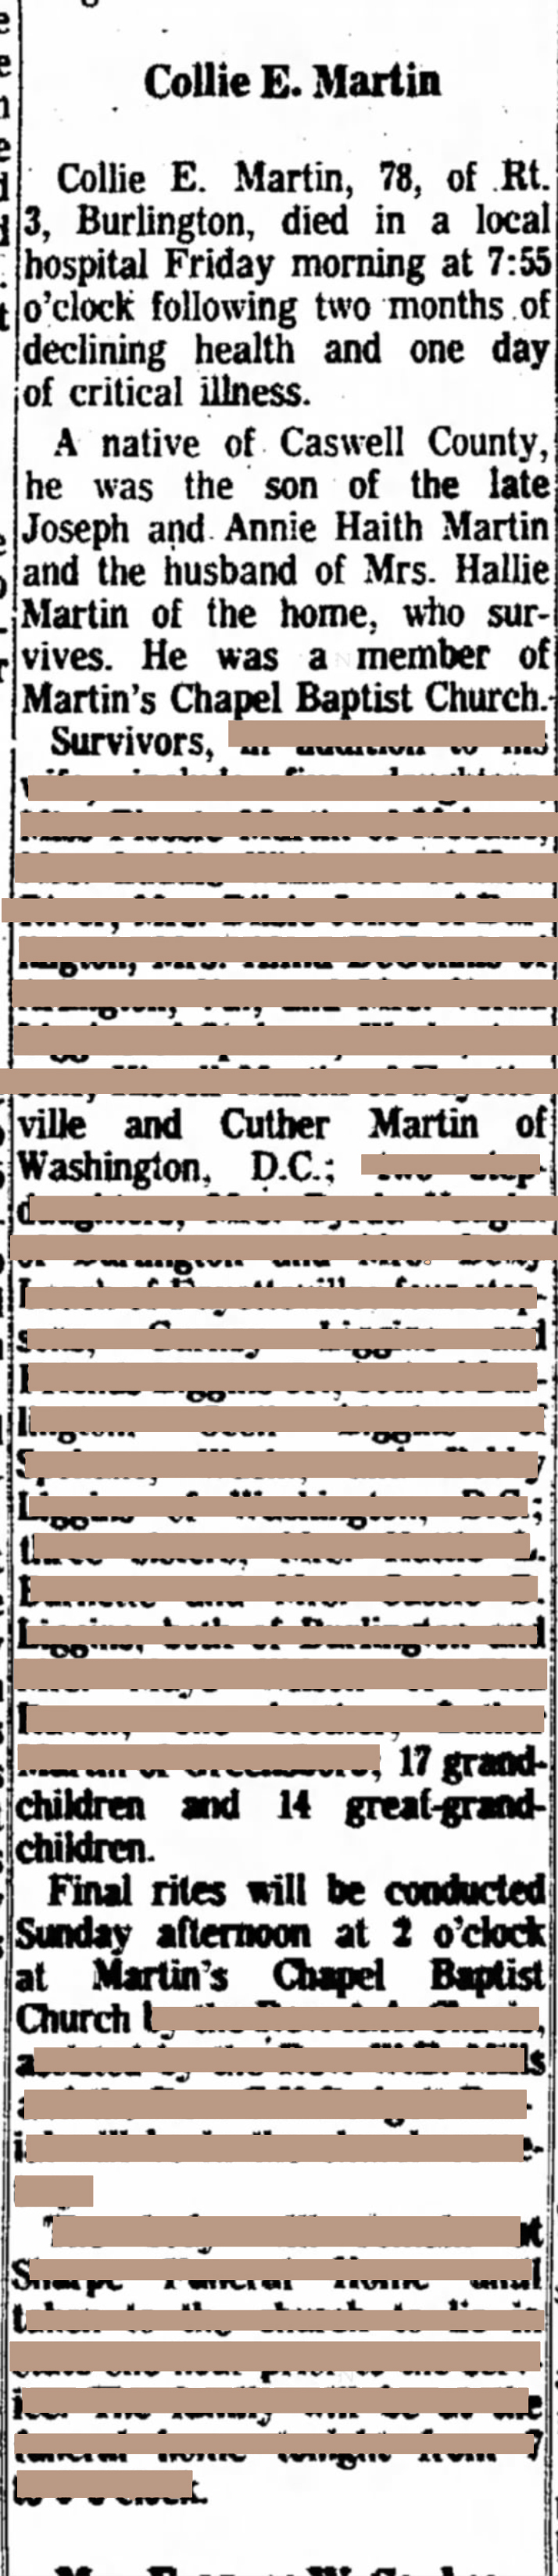 Generation 4:  My Mother is one of the 14 great-grandchildren (1971)    Redacted obituary of Collie Exodus Martin (2x great grandfather), html hex color codes sourced from photographs of my mother.  Digital Print  37 x 8 in